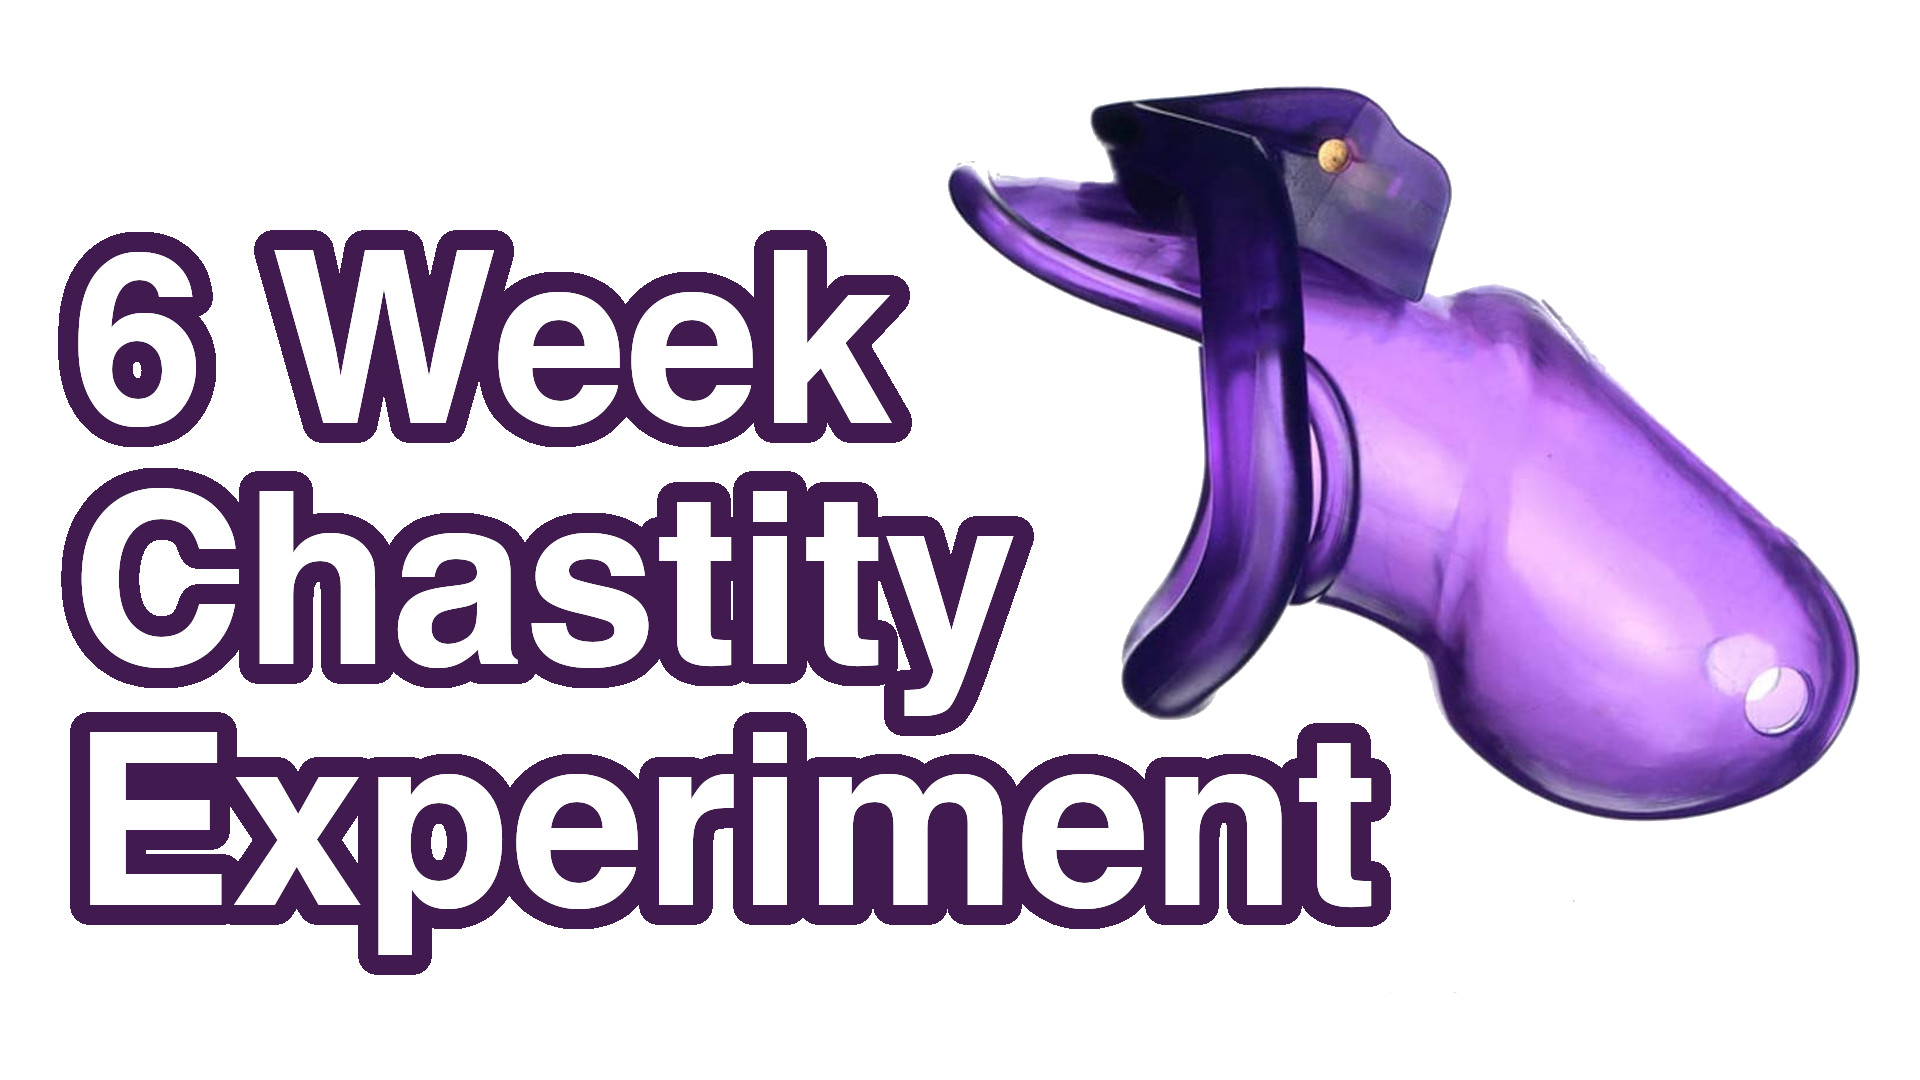 The Big 6 Week Chastity Experiment